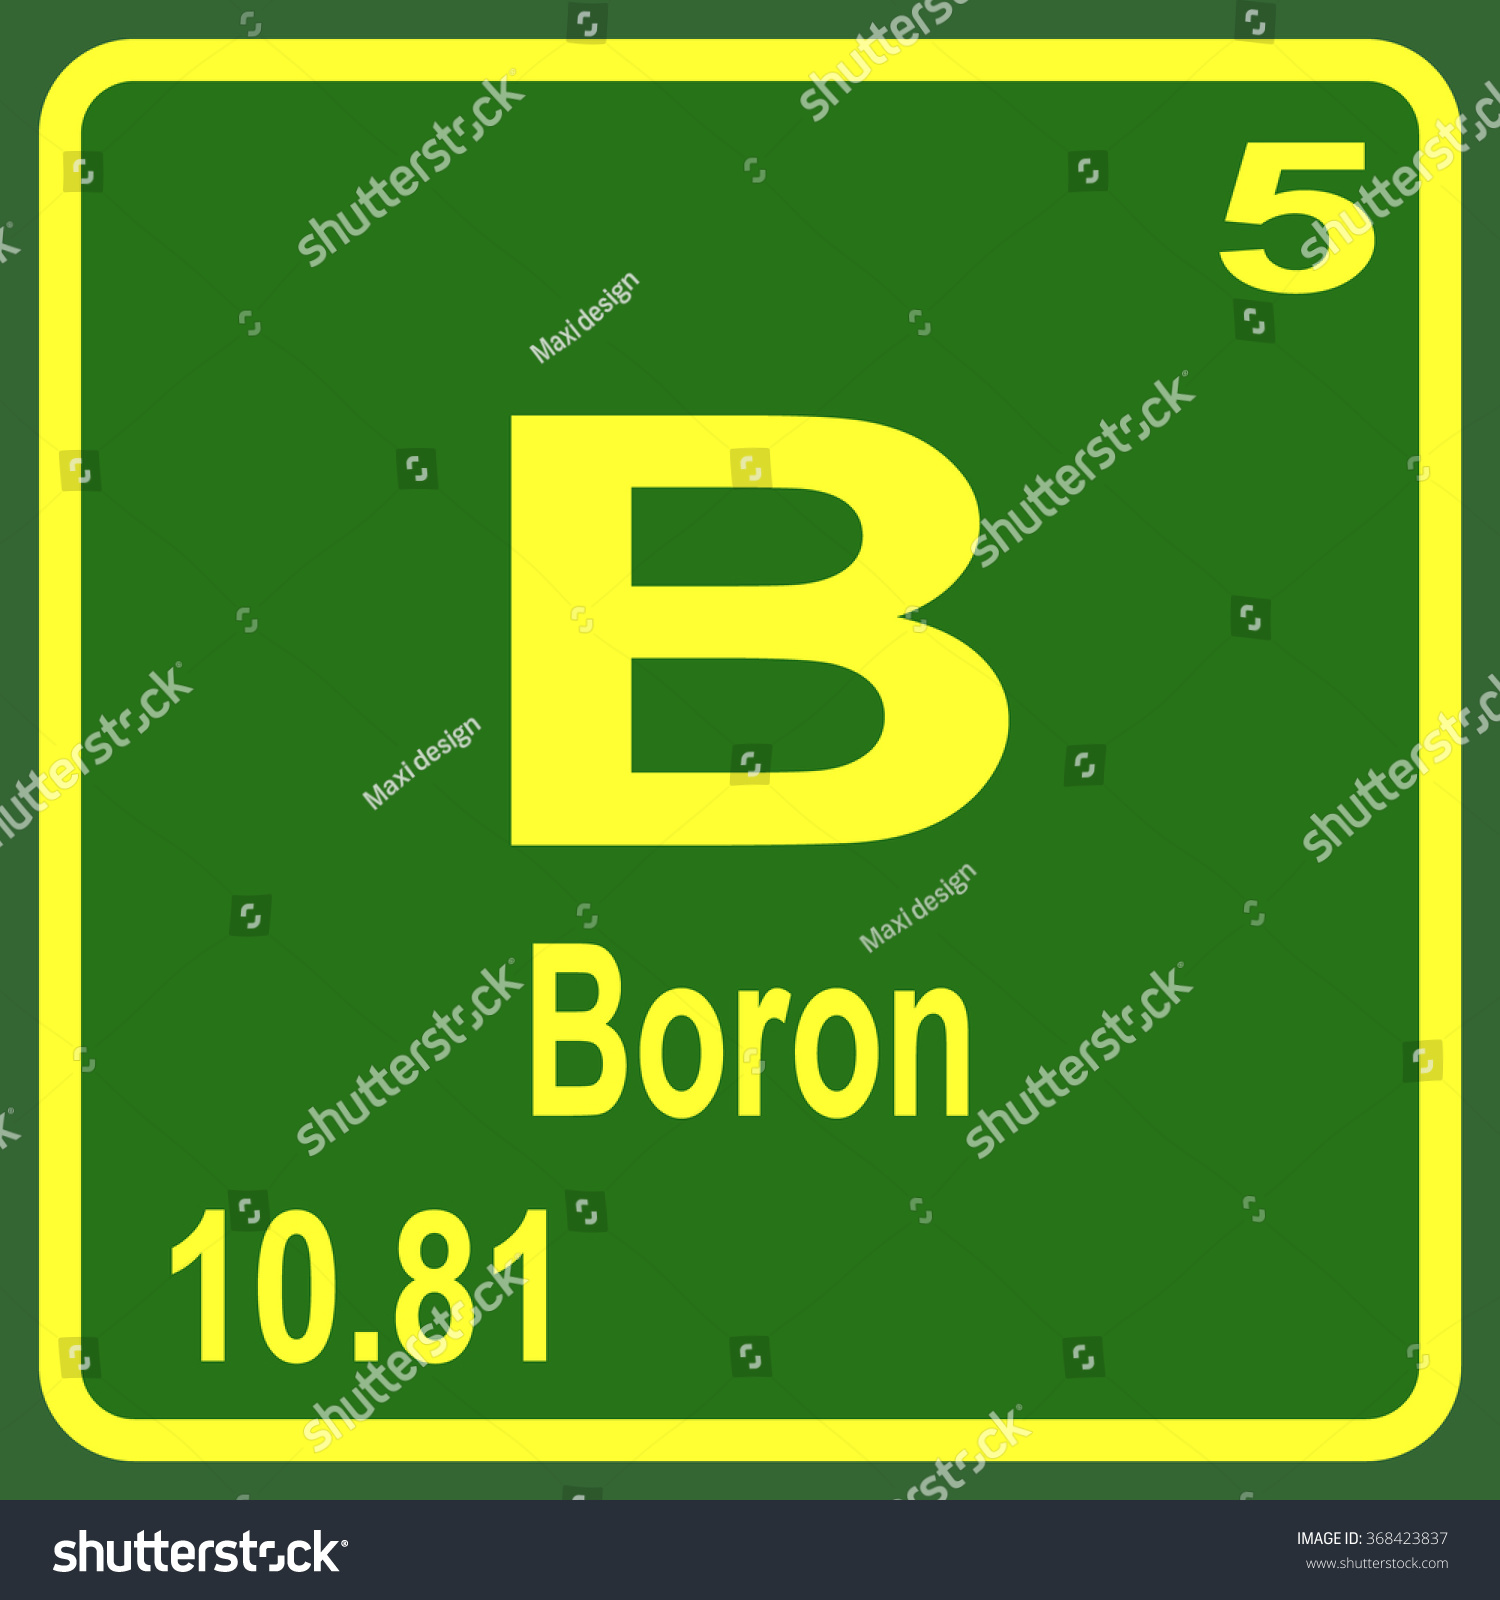 Periodic table elements boron stock vector 368423837 shutterstock periodic table of elements boron gamestrikefo Image collections